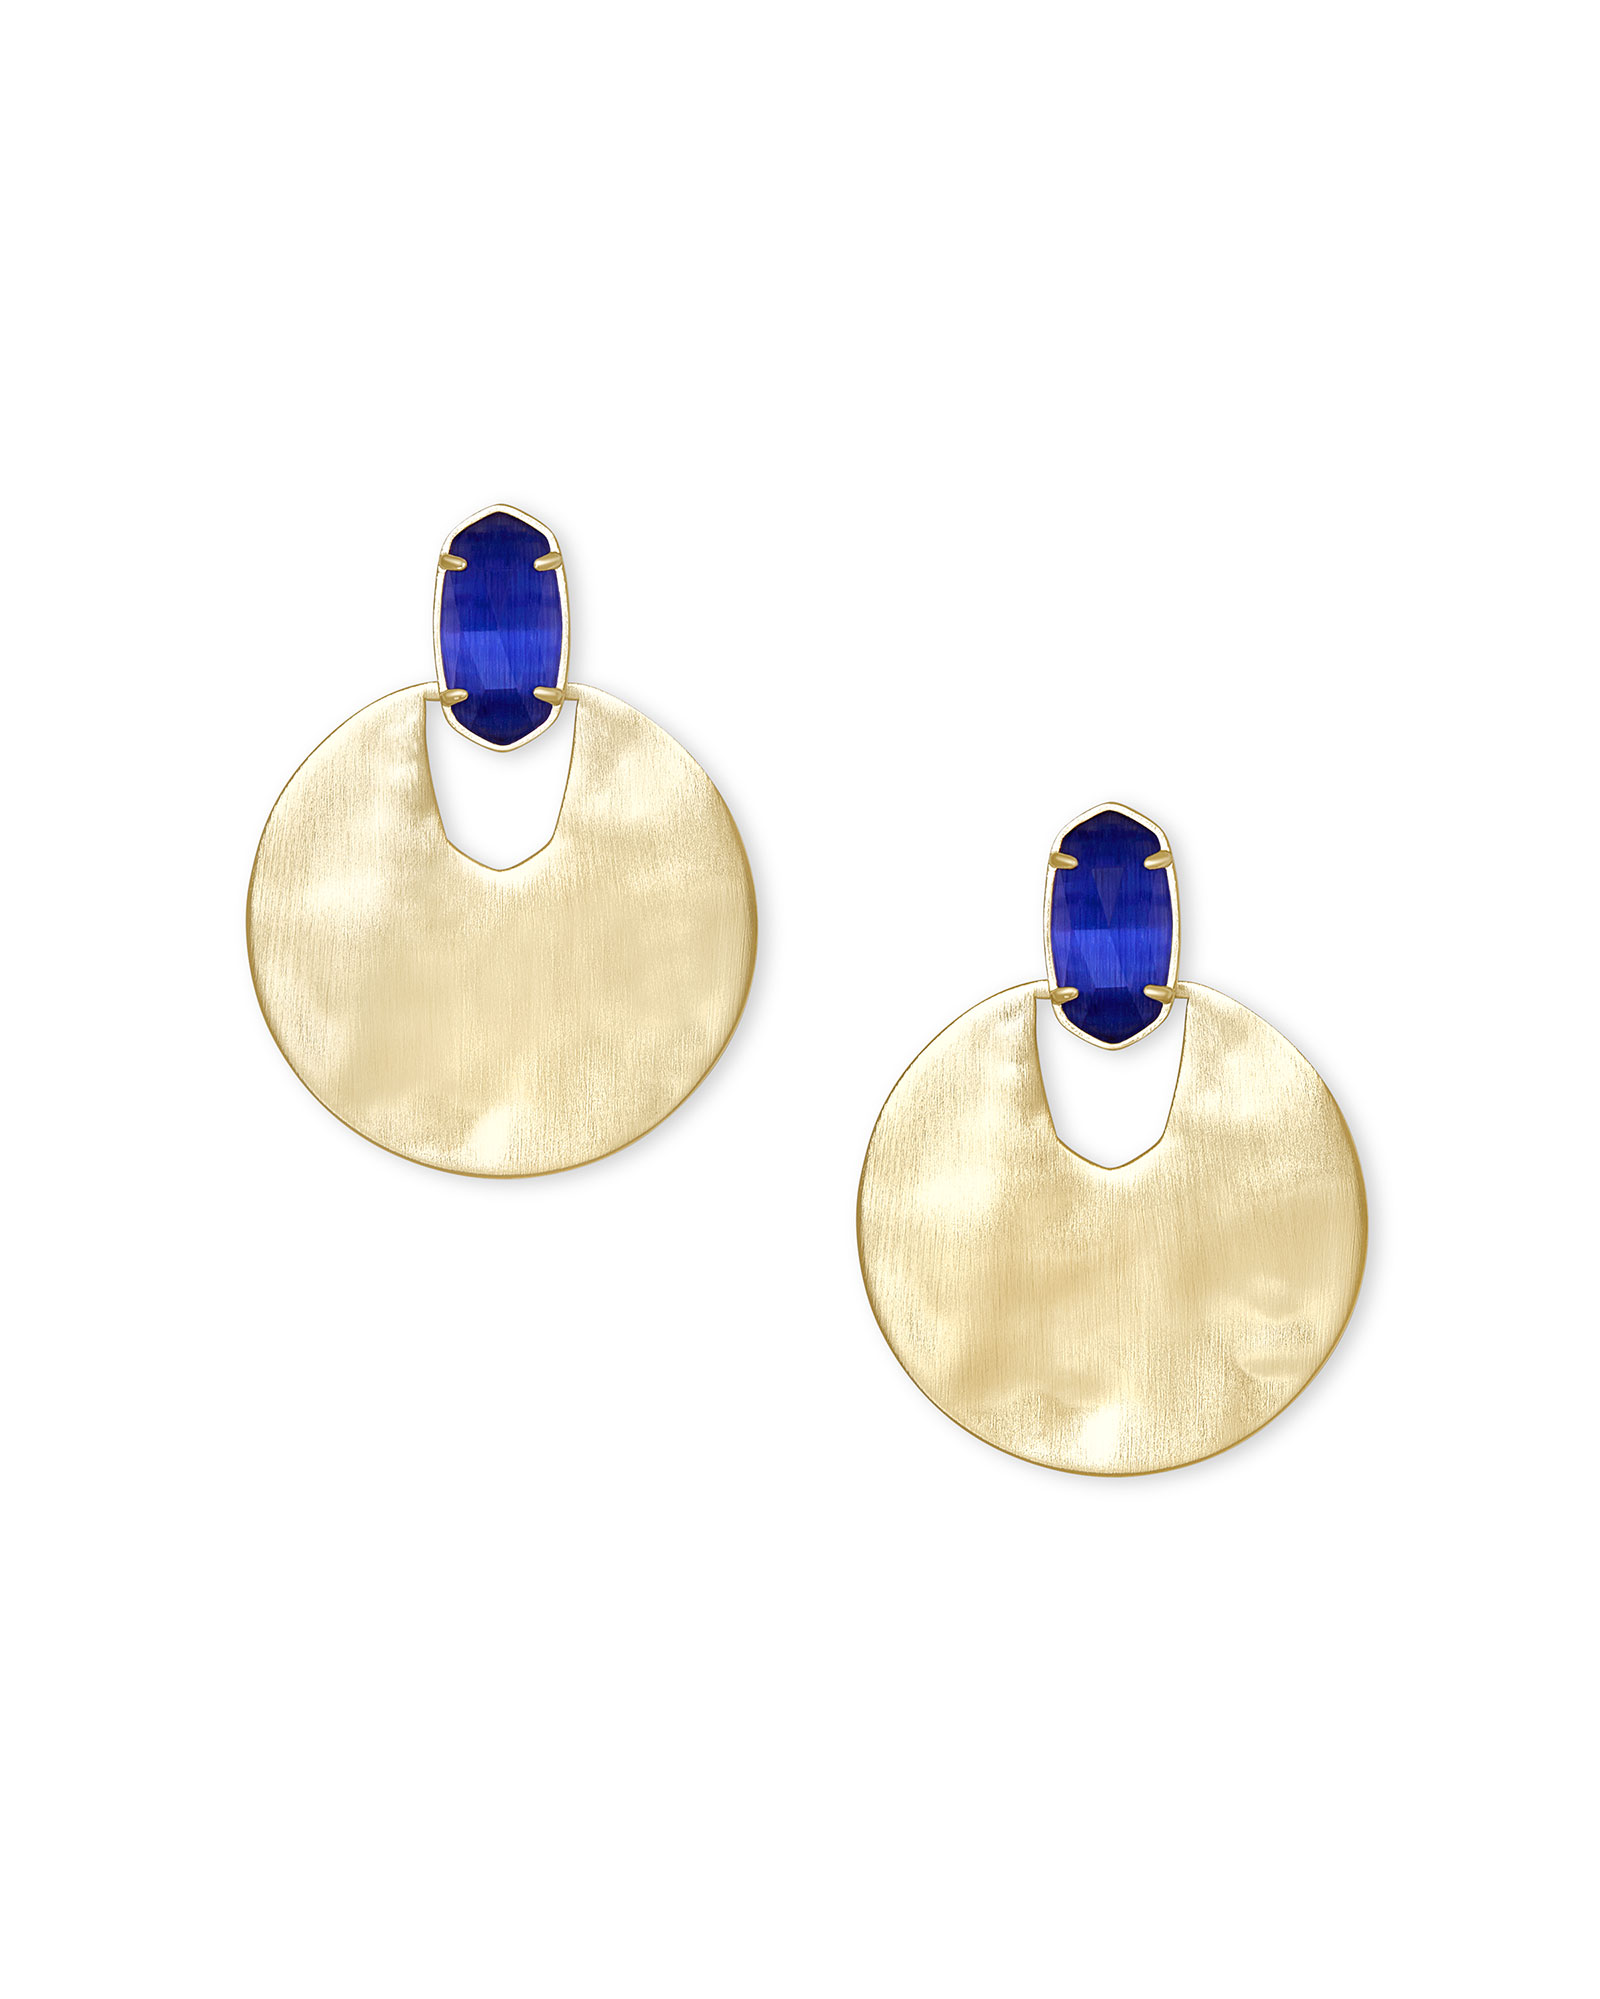 Deena Gold Hoop Earrings in Cobalt Cat's Eye